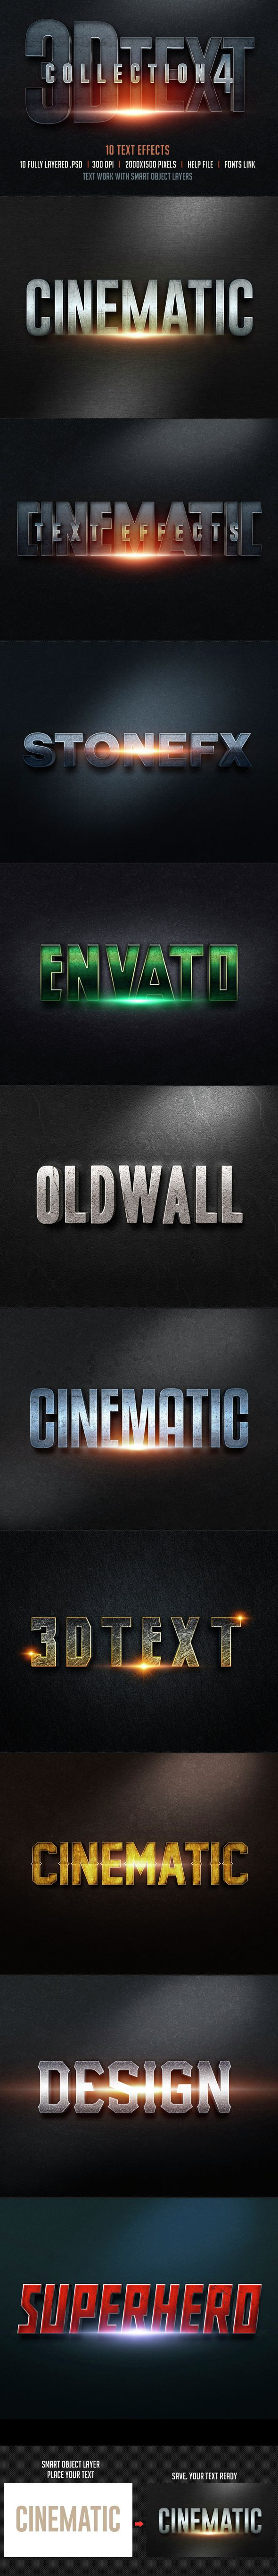 3D Text Effects for Photoshop. Download here: http://graphicriver.net/item/3d-text-effects-col4/14721534?ref=ksioks